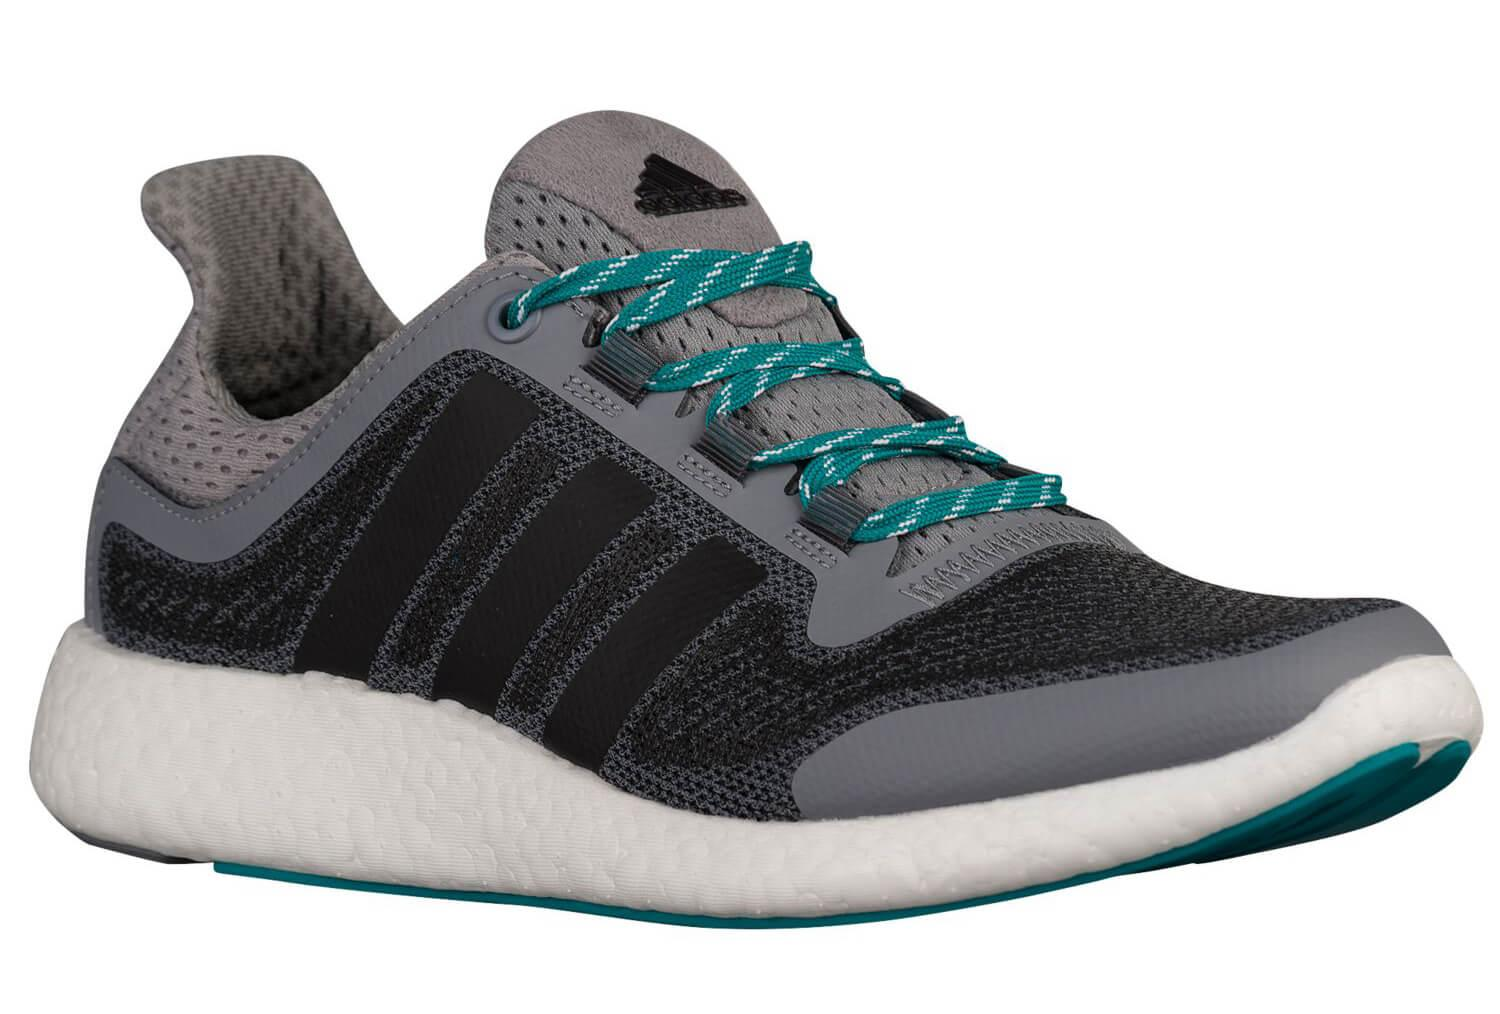 Adidas Pure Boost 2.0 Fully Reviewed 3